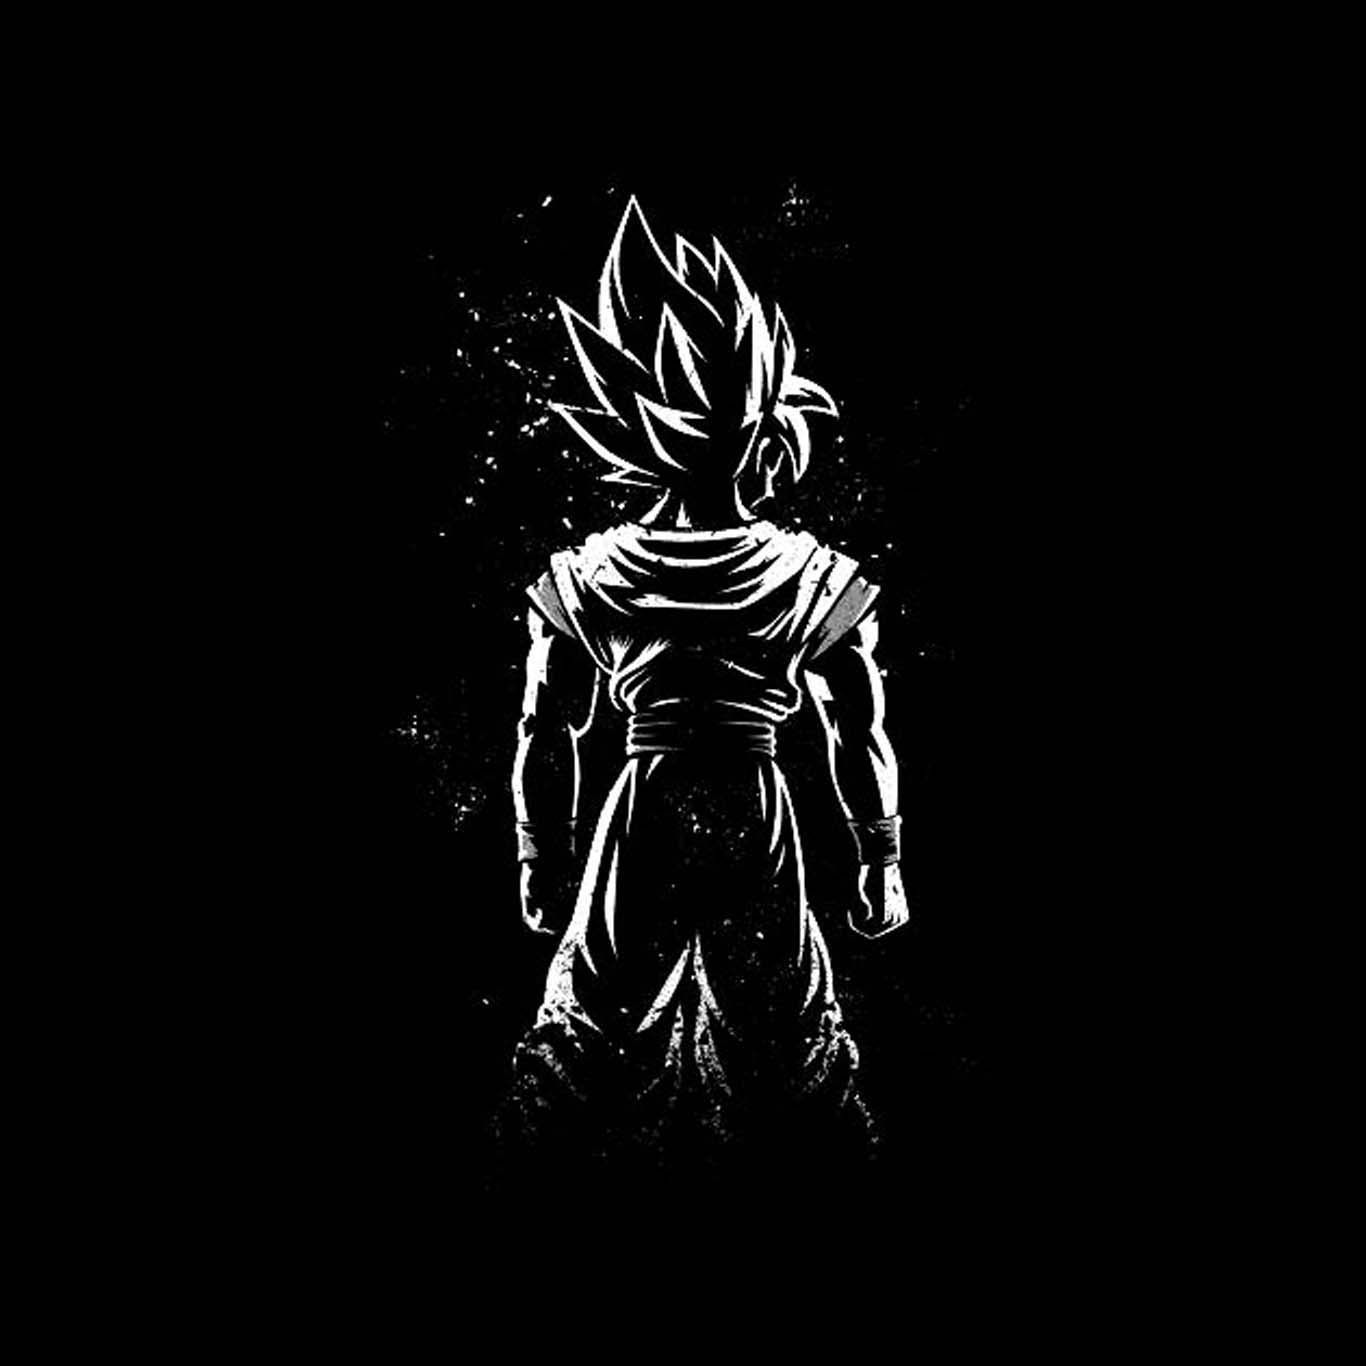 Goku Black And White Wallpapers Top Free Goku Black And White Backgrounds Wallpaper Dragon Ball Wallpaper Iphone Dragon Ball Wallpapers Dragon Ball Artwork